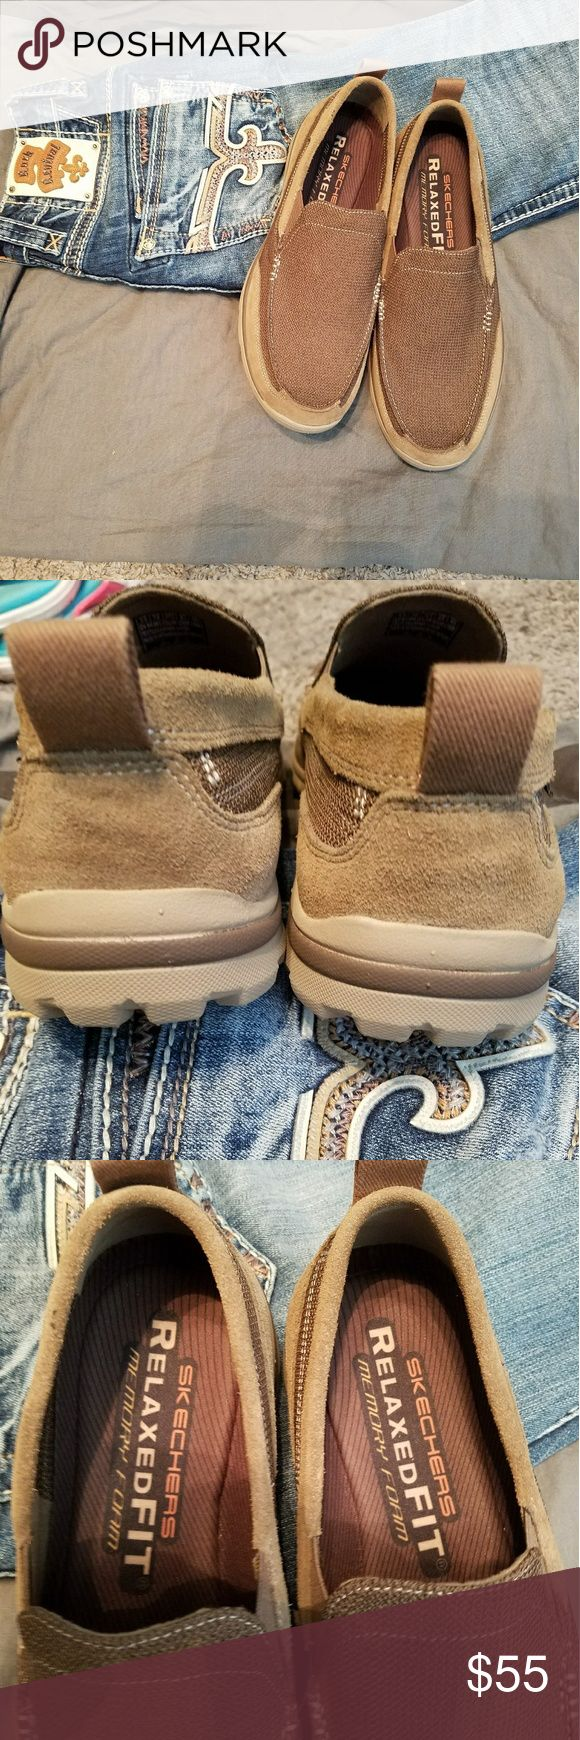 NWOT SKECHERS with Memory Foam size 13/ 47.5 NWOT SKECHERS slip on shoes with Memory Foam. They are made of a canvas and suede material. You can wear this shoe with jeans, shorts or dress pants, a very versatile shoe! Skechers Shoes Loafers & Slip-Ons